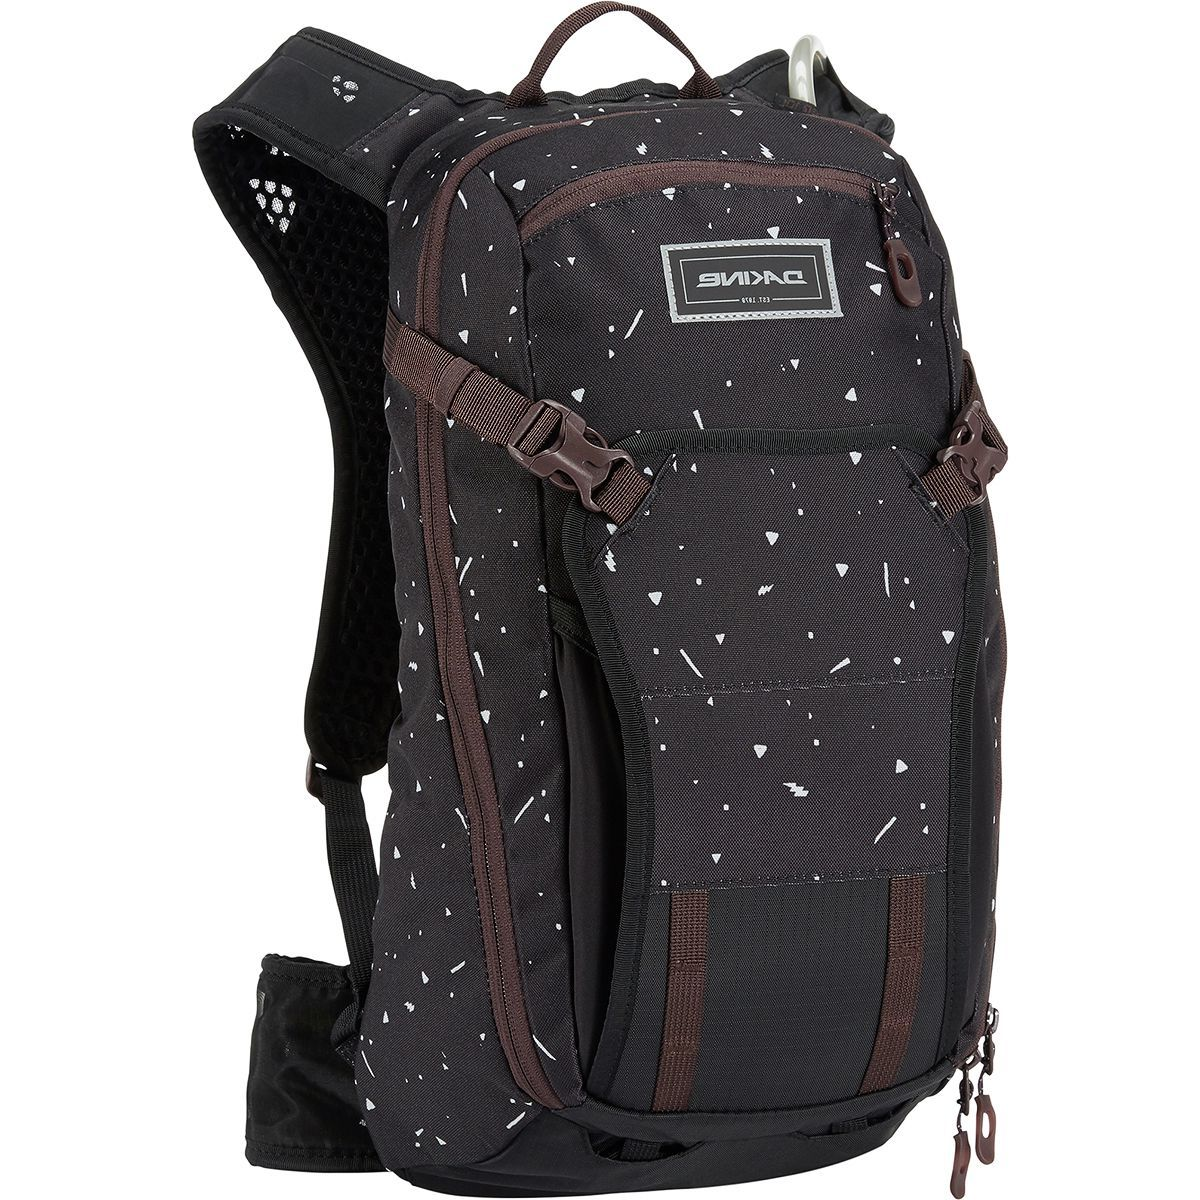 DAKINE Drafter 10L Hydration Pack - Women's